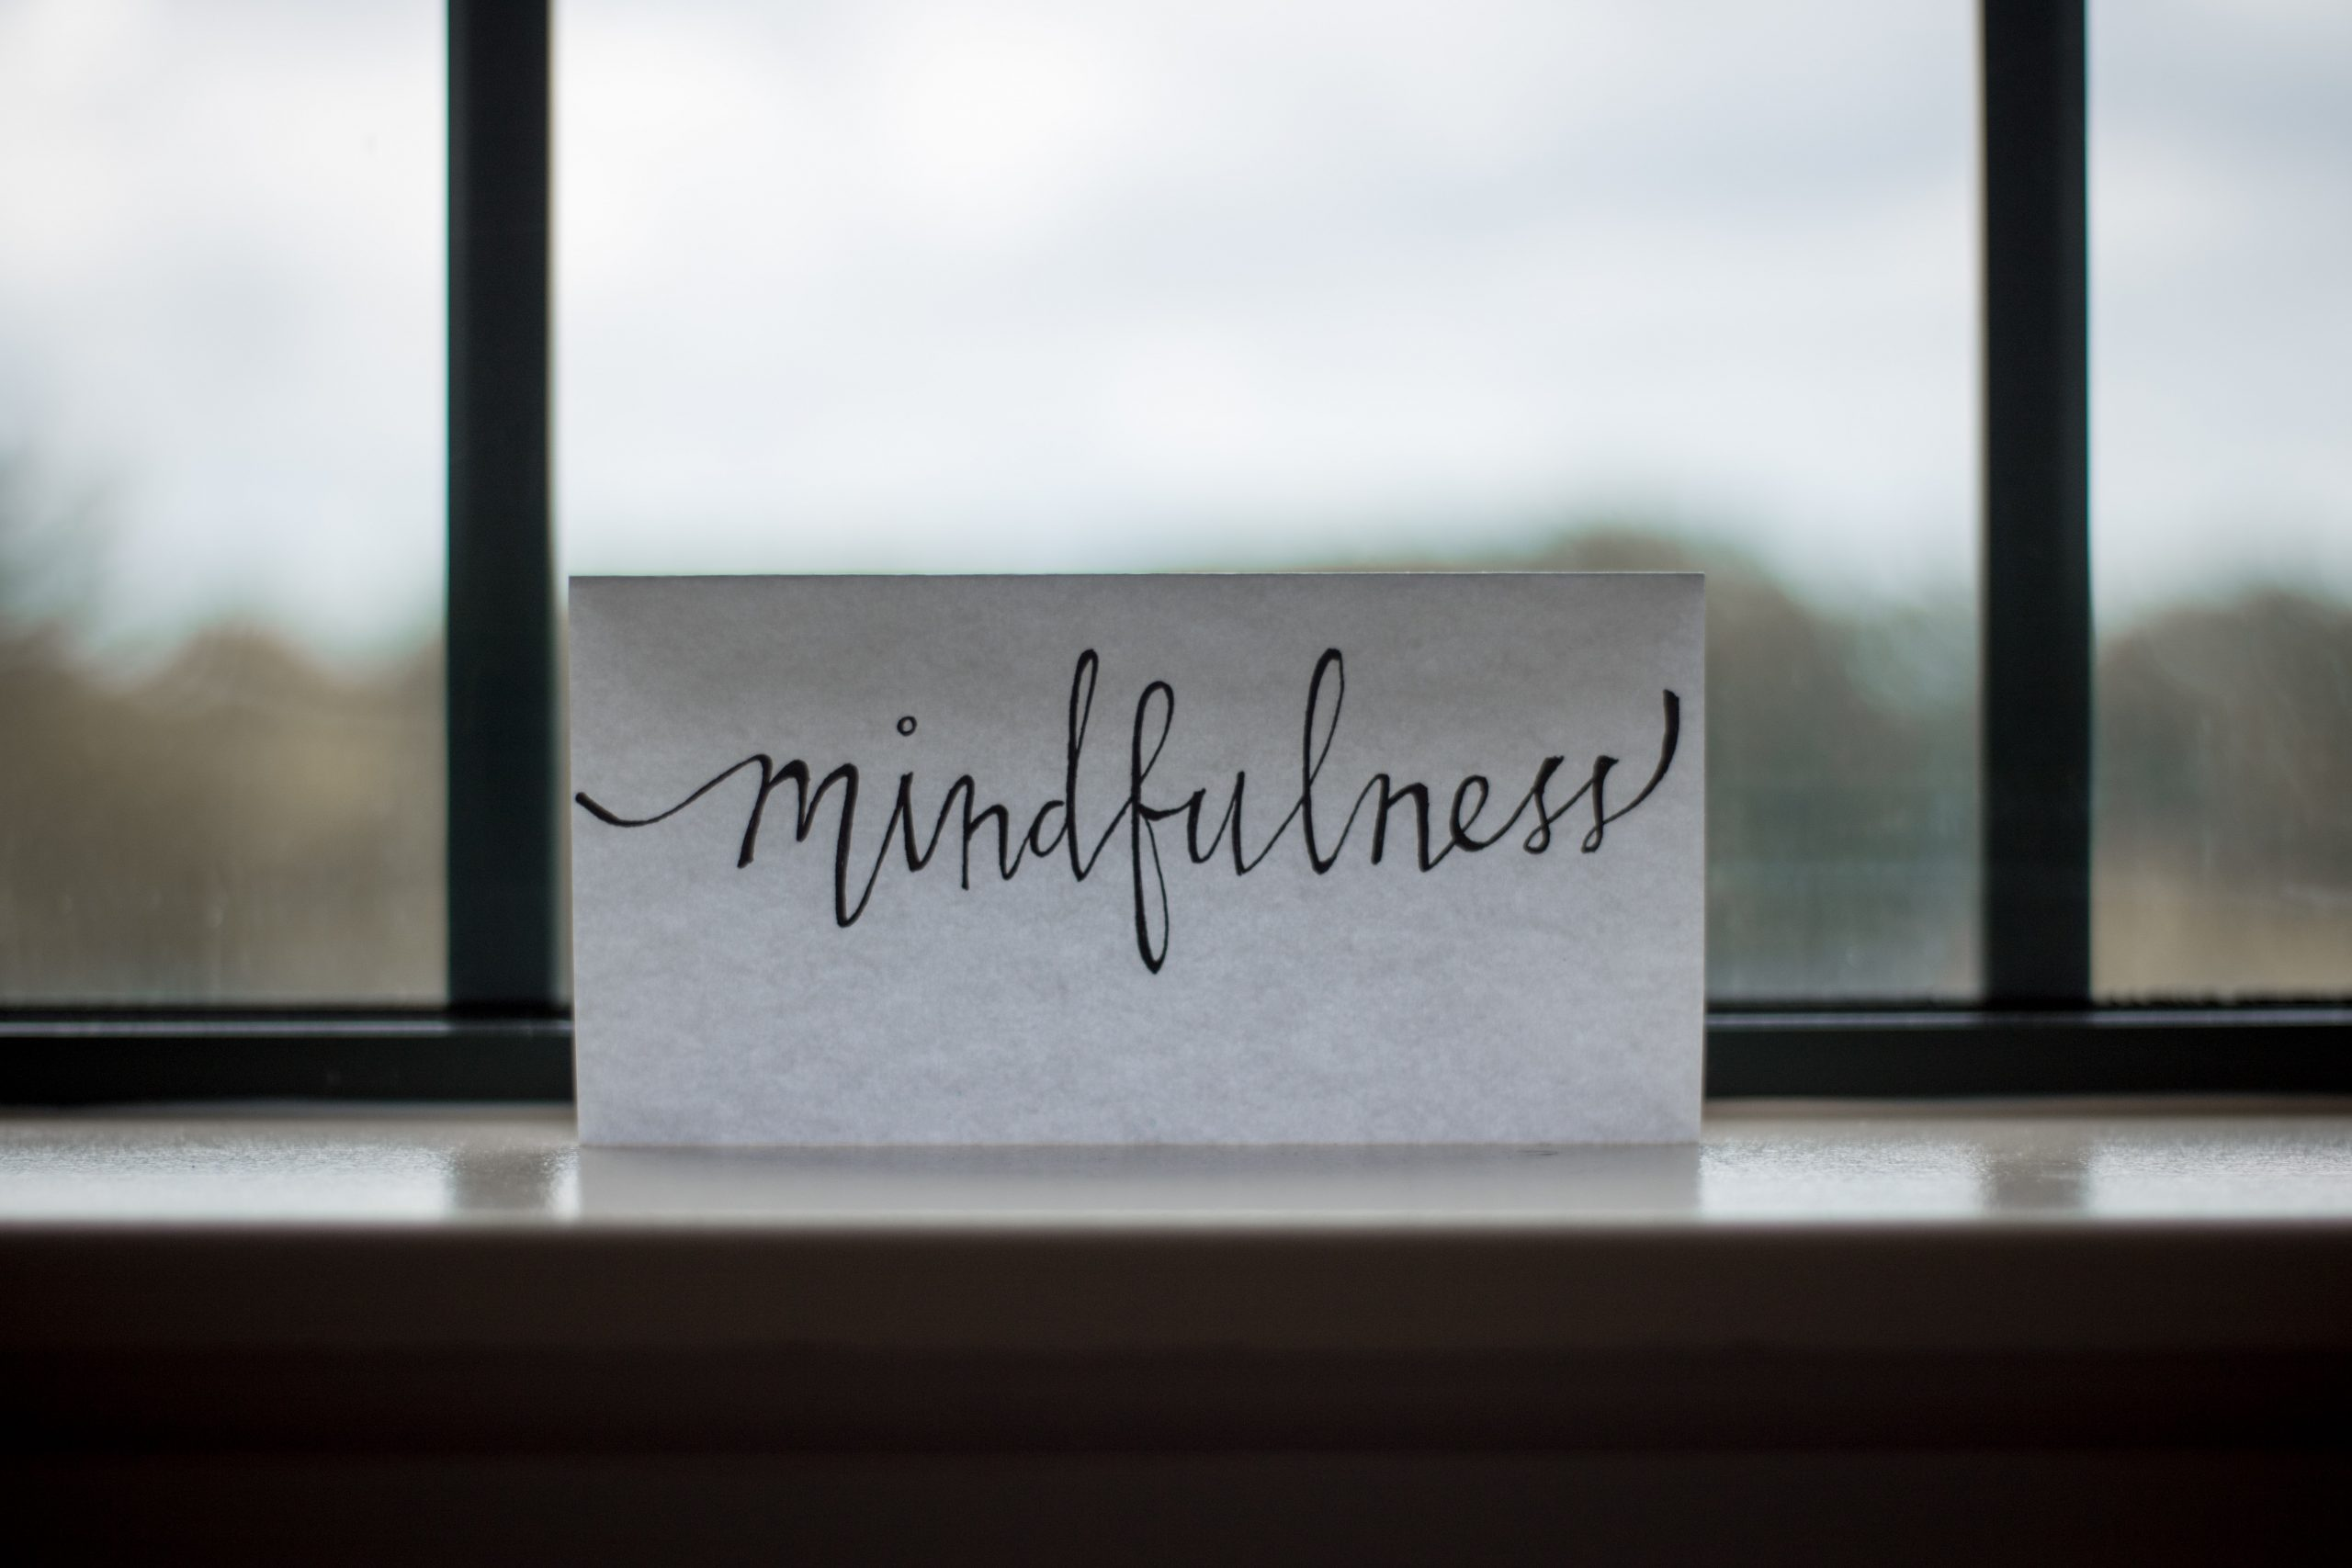 Mindfulness text used to represent a CBT modality.